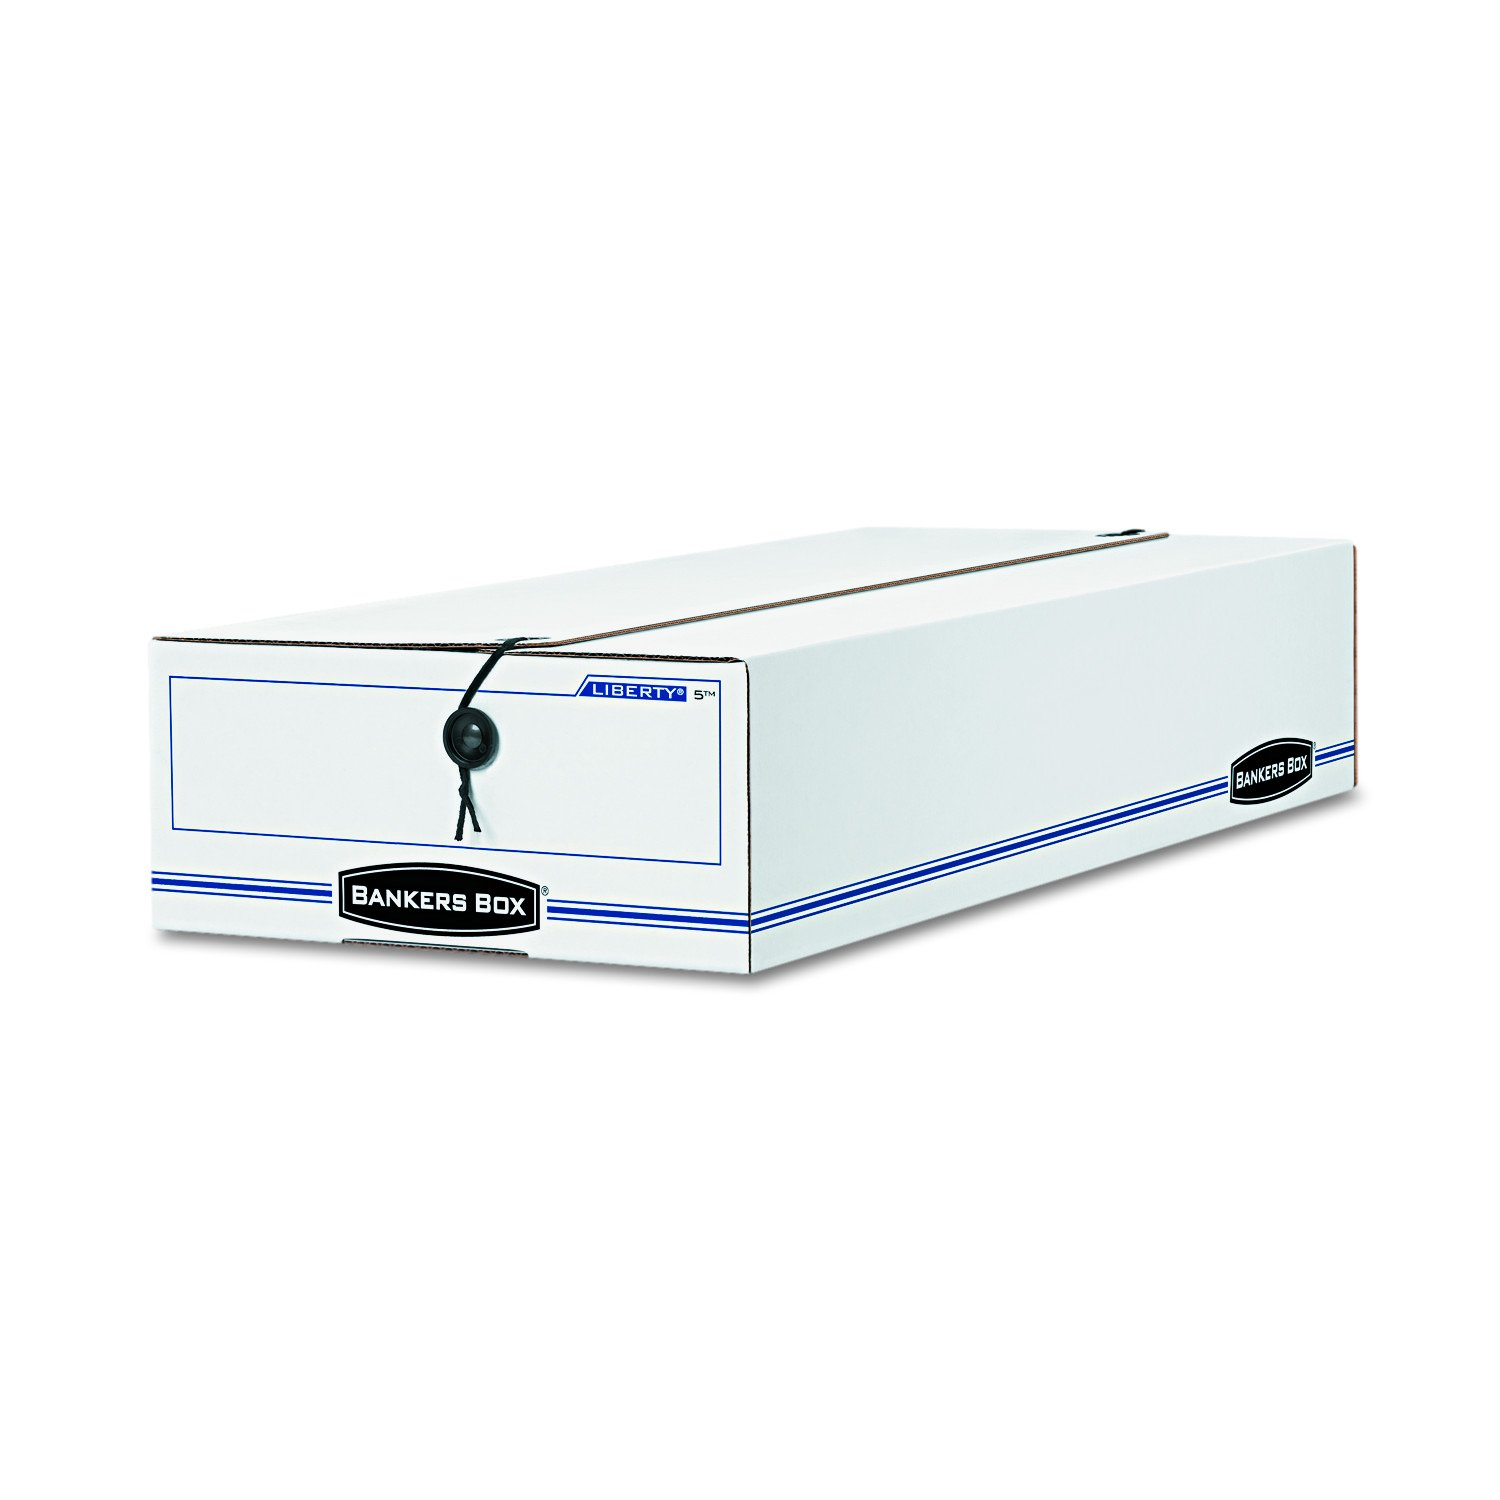 Bankers Box 00005 LIBERTY Check/Voucher Storage Box, 10 3/4 x 23 1/4 x 4-5/8, White/Blue (Case of 12) by Bankers Box